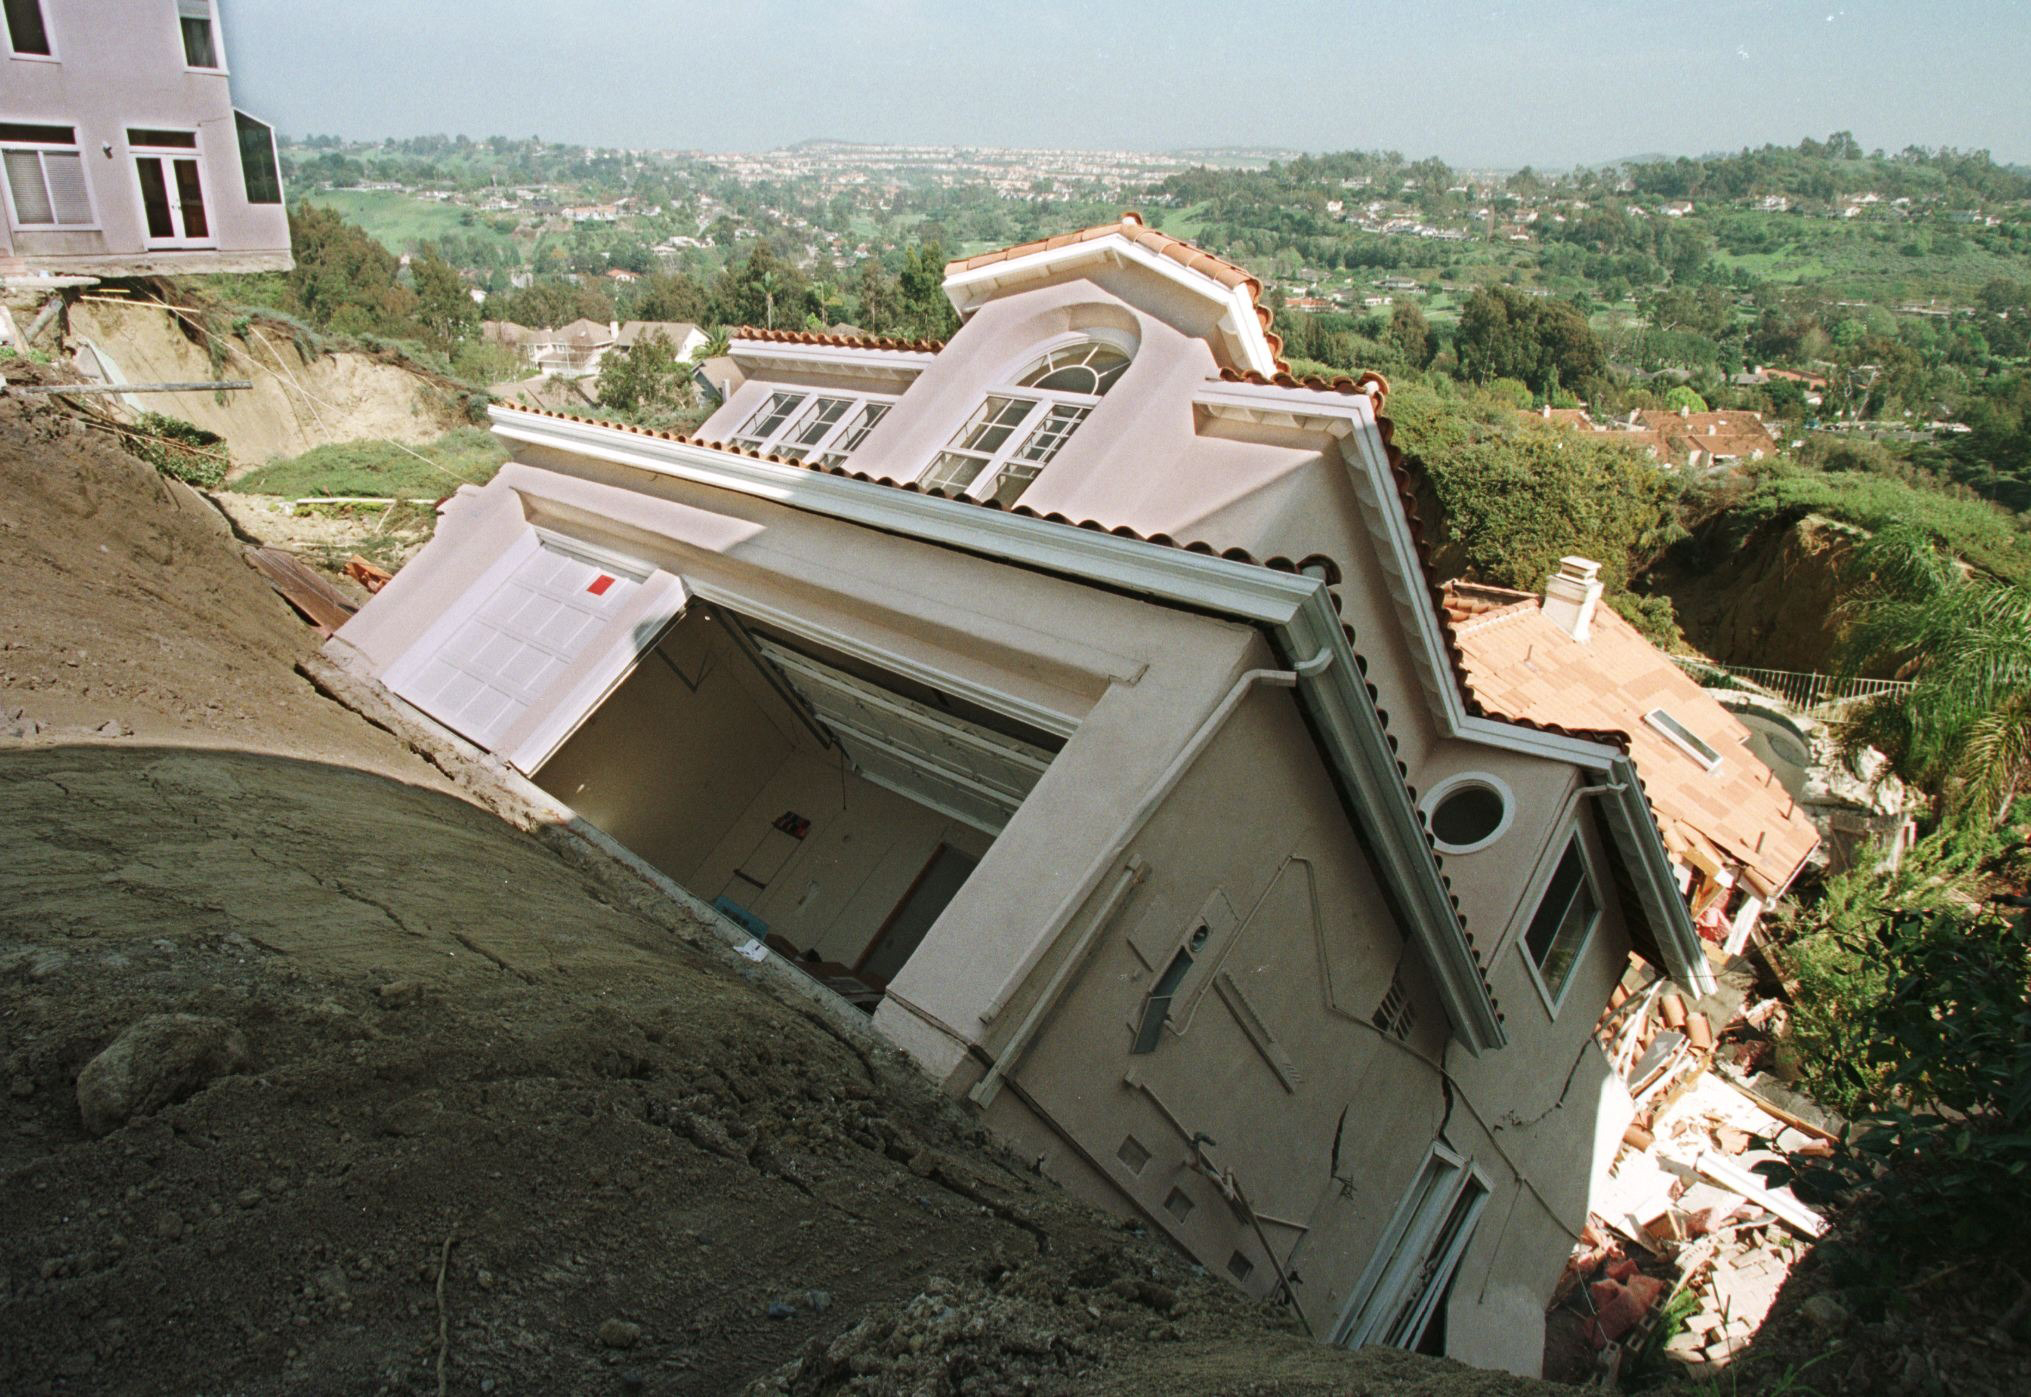 A California home slides down a hill after erosion due to rains tied to El Nino in March, 1998.